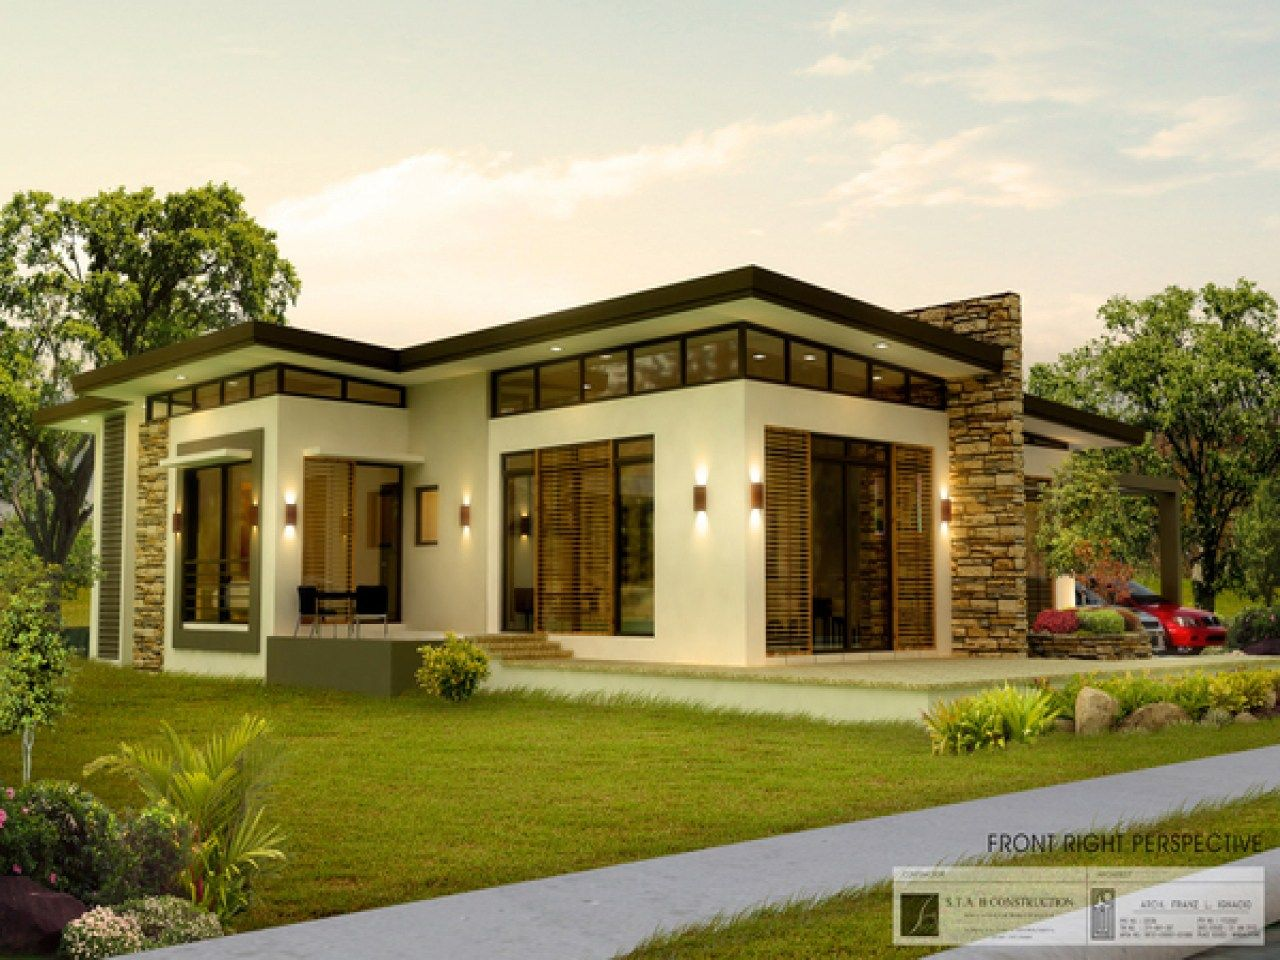 House design philippines bungalow - Home Plans Philippines Bungalow House Plans Philippines Design Tokjanggutphoto Bungalow Design